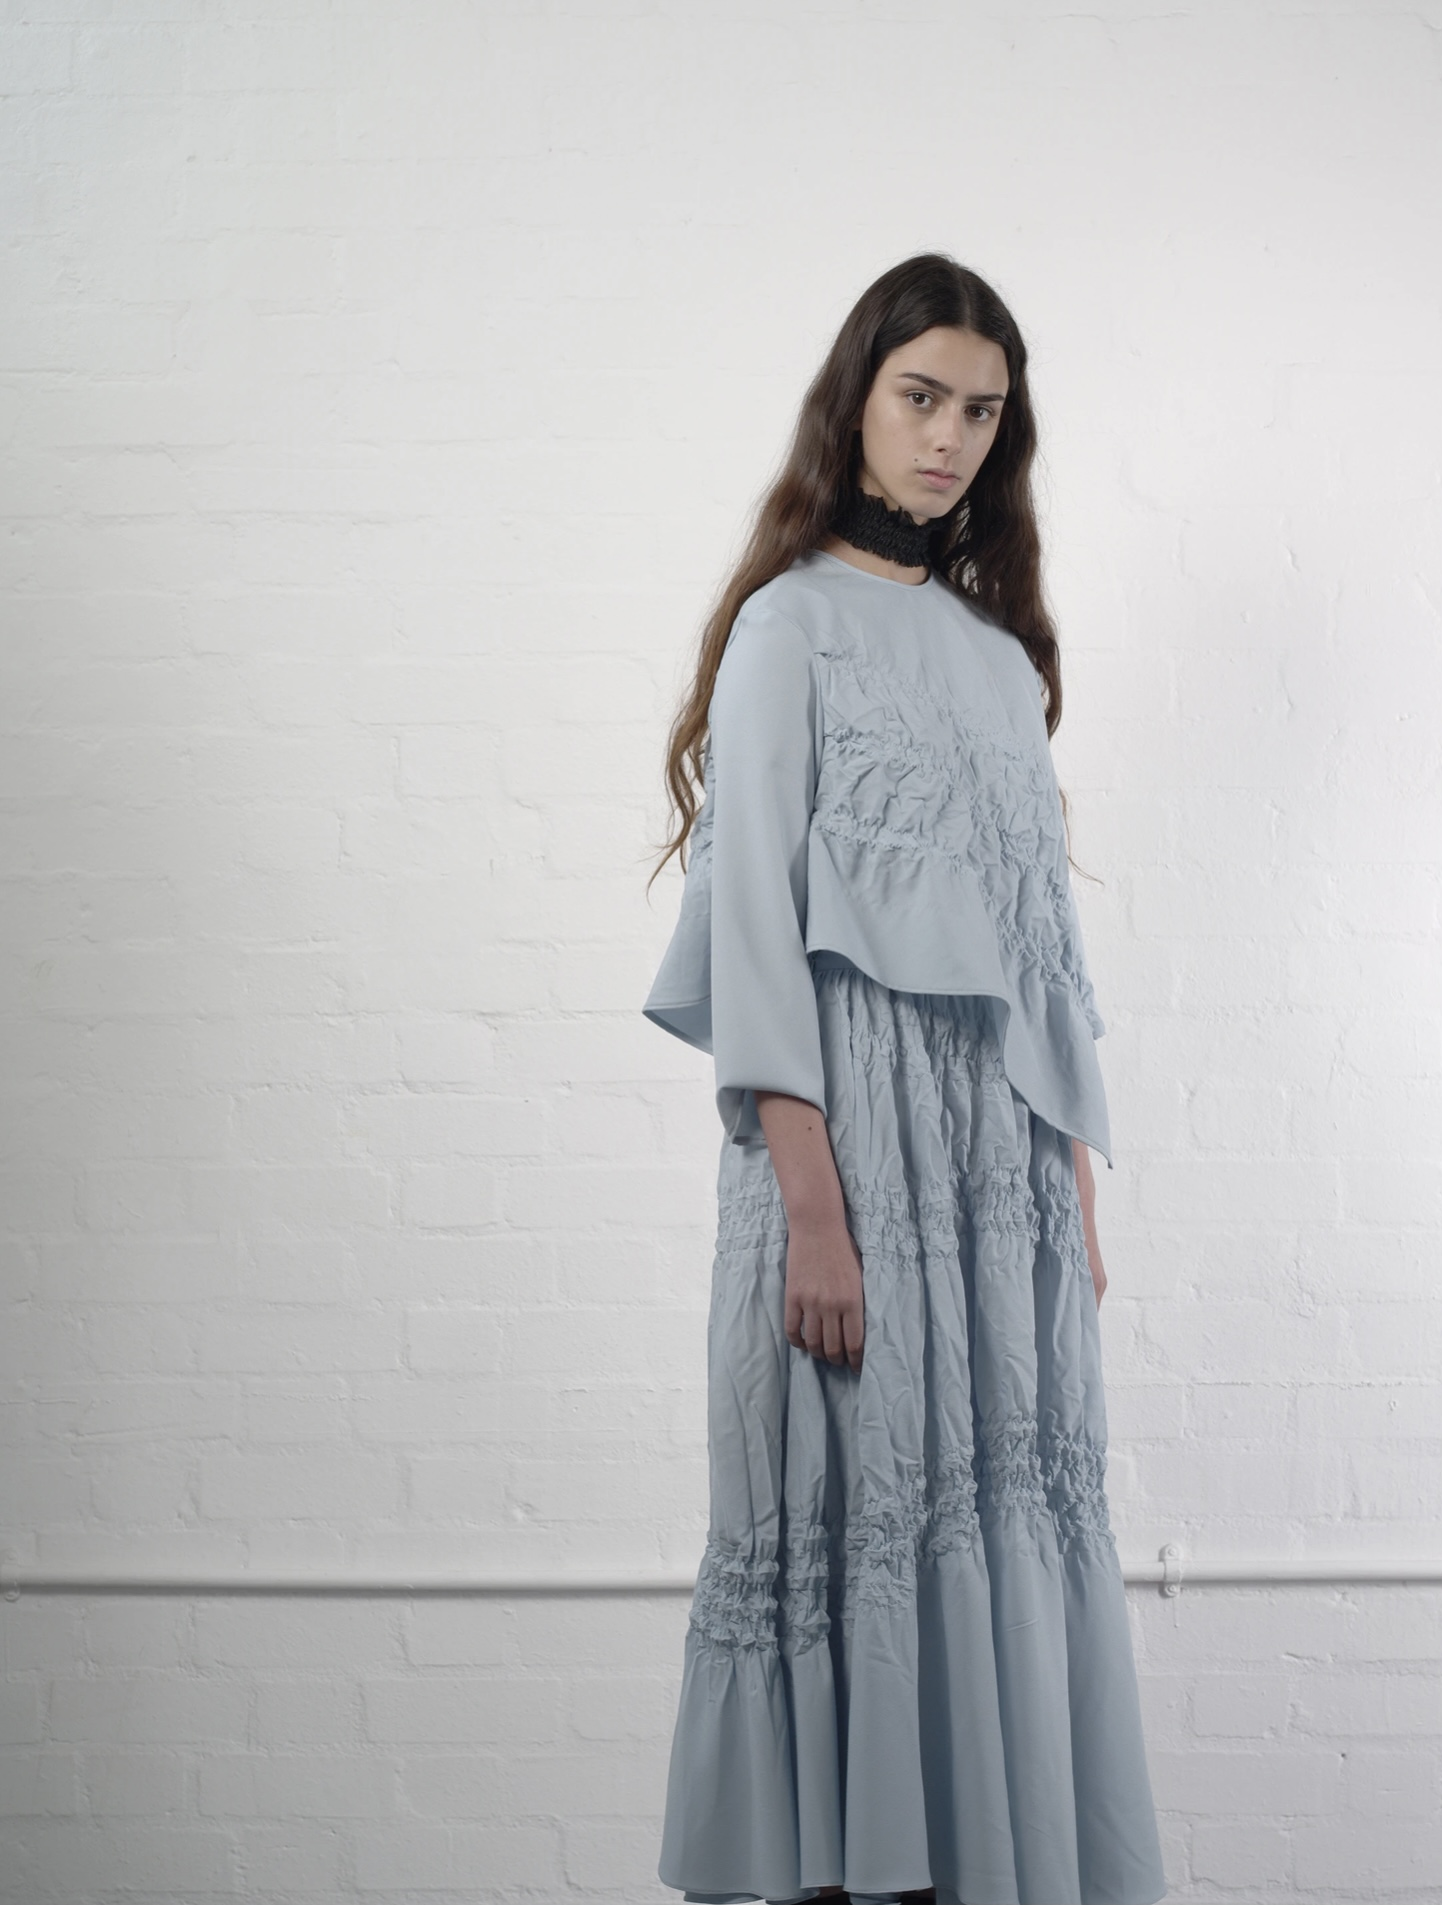 Georgia Hardinge, AISPI: Your shopping guide for boutiques and designers in Europe